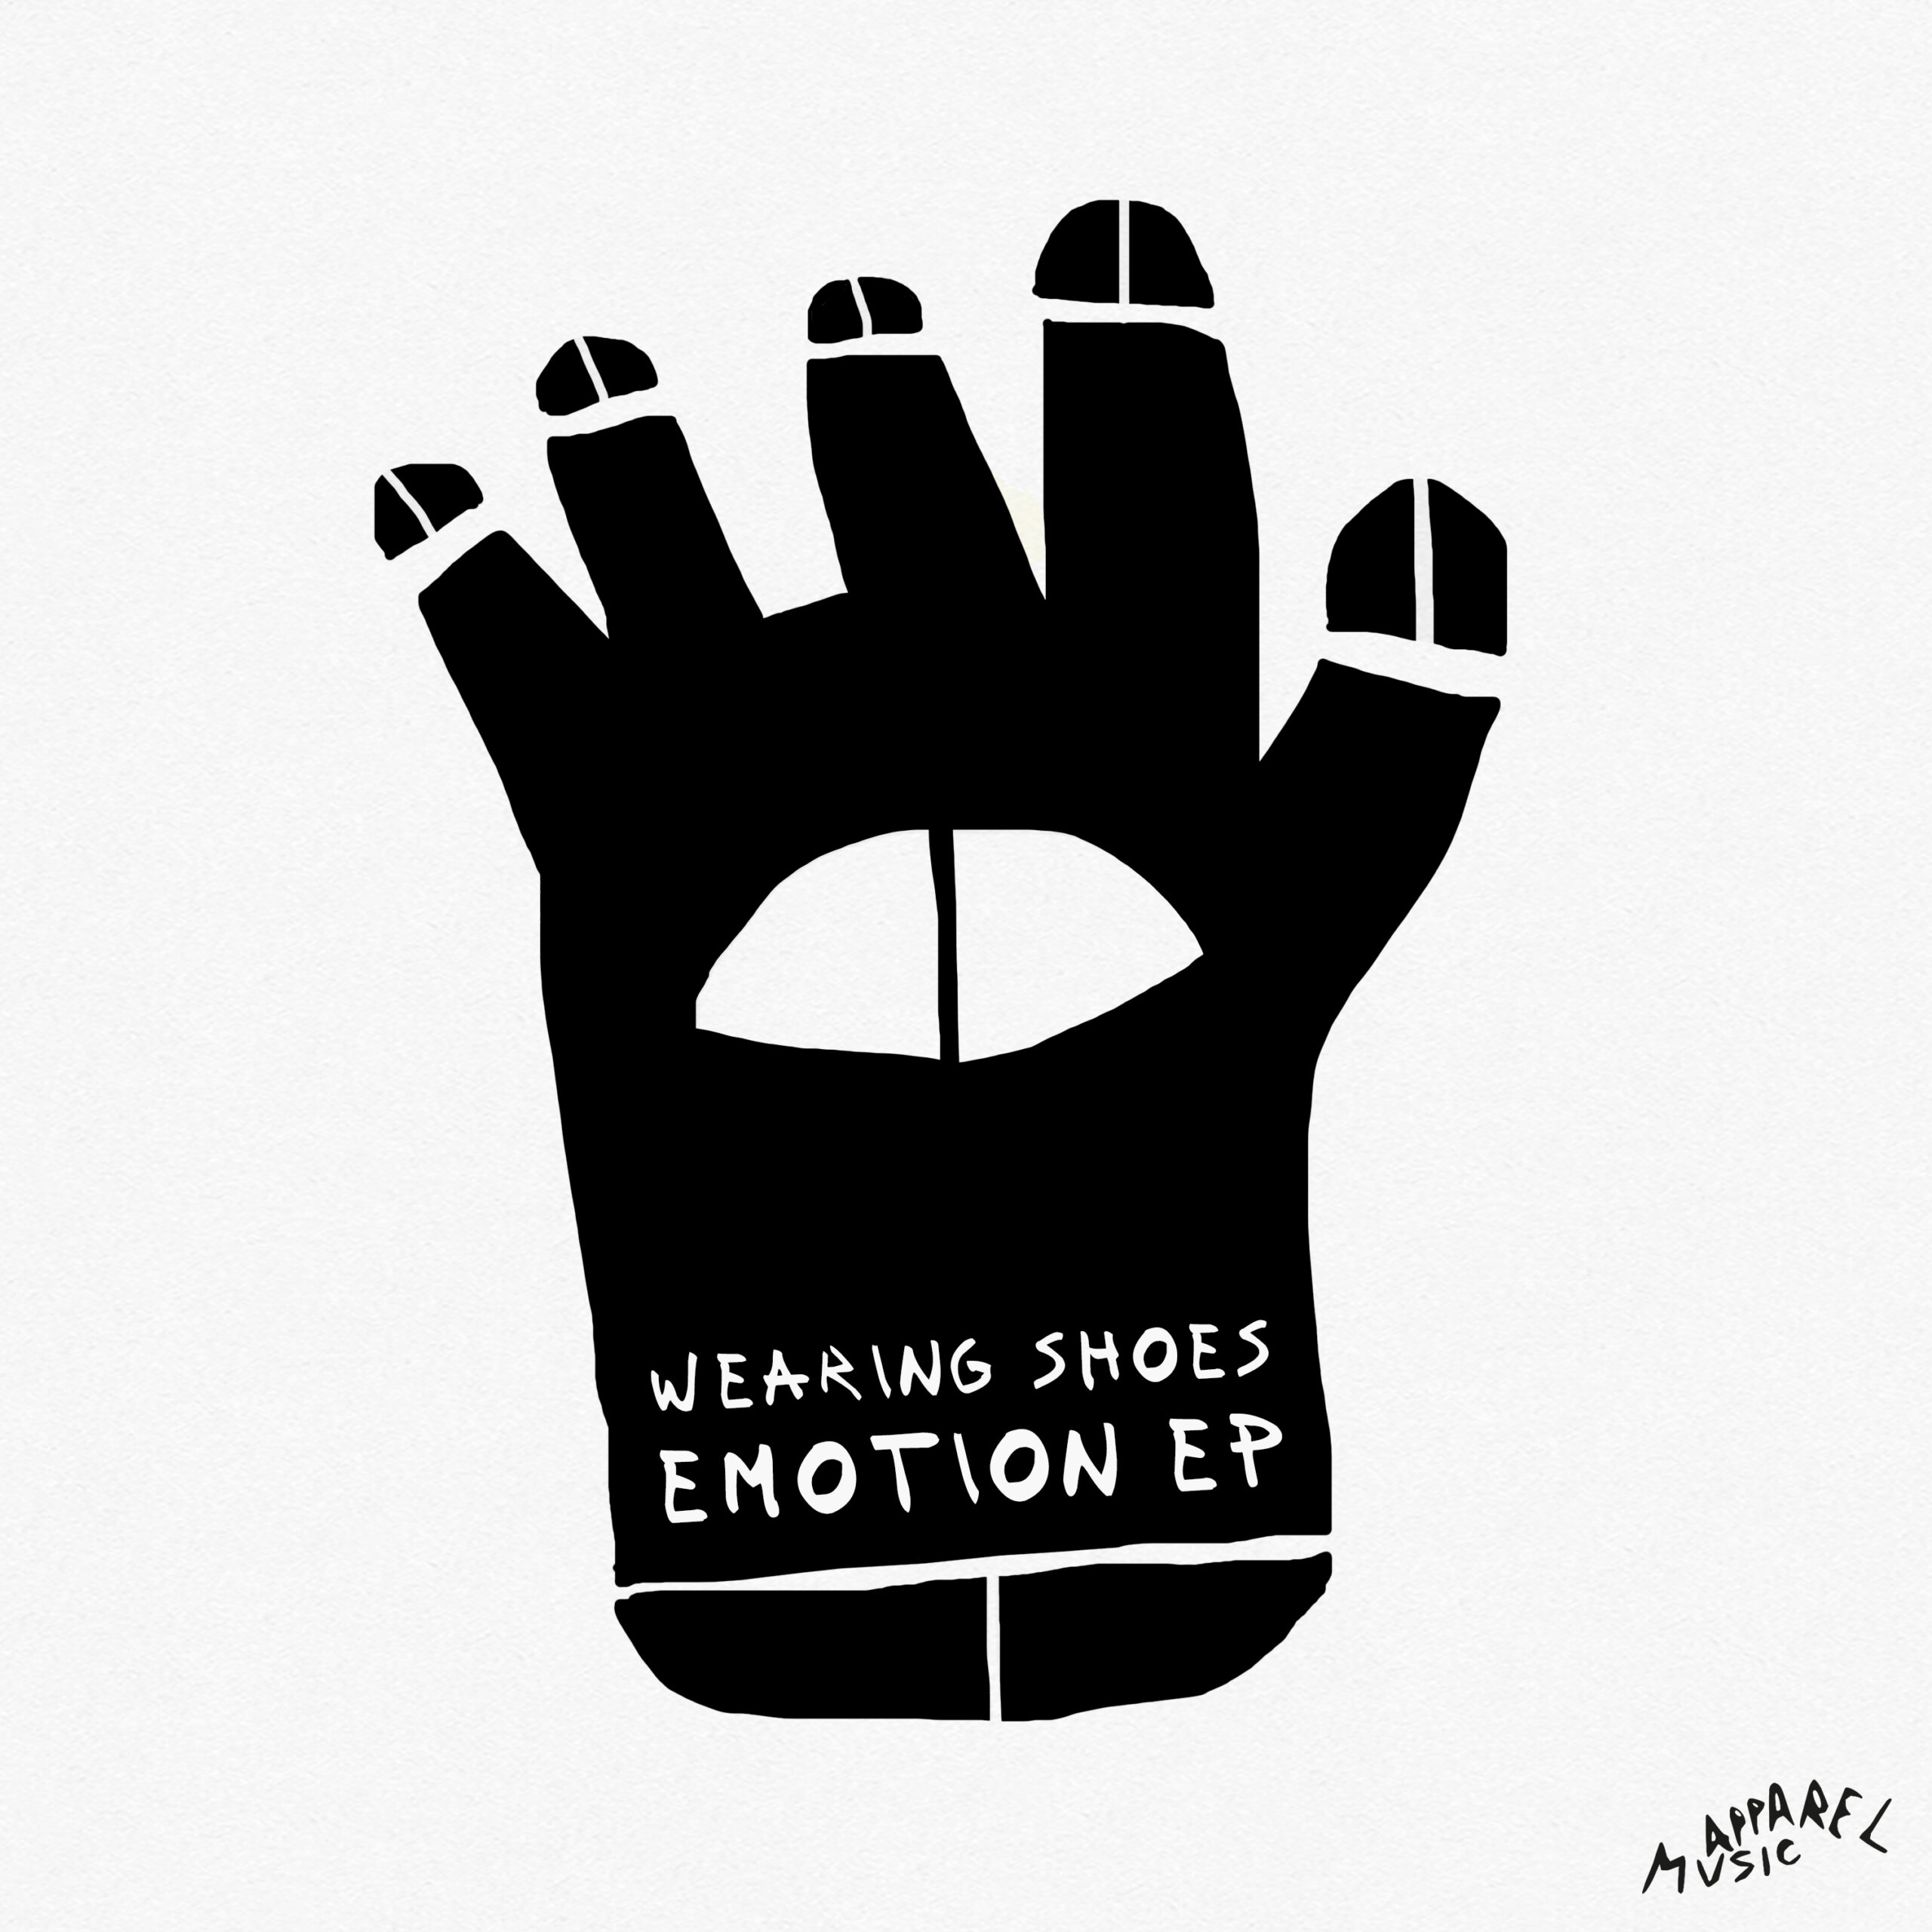 Coming soon Emotion EP by Wearing Shoes on Apparel Music Extra